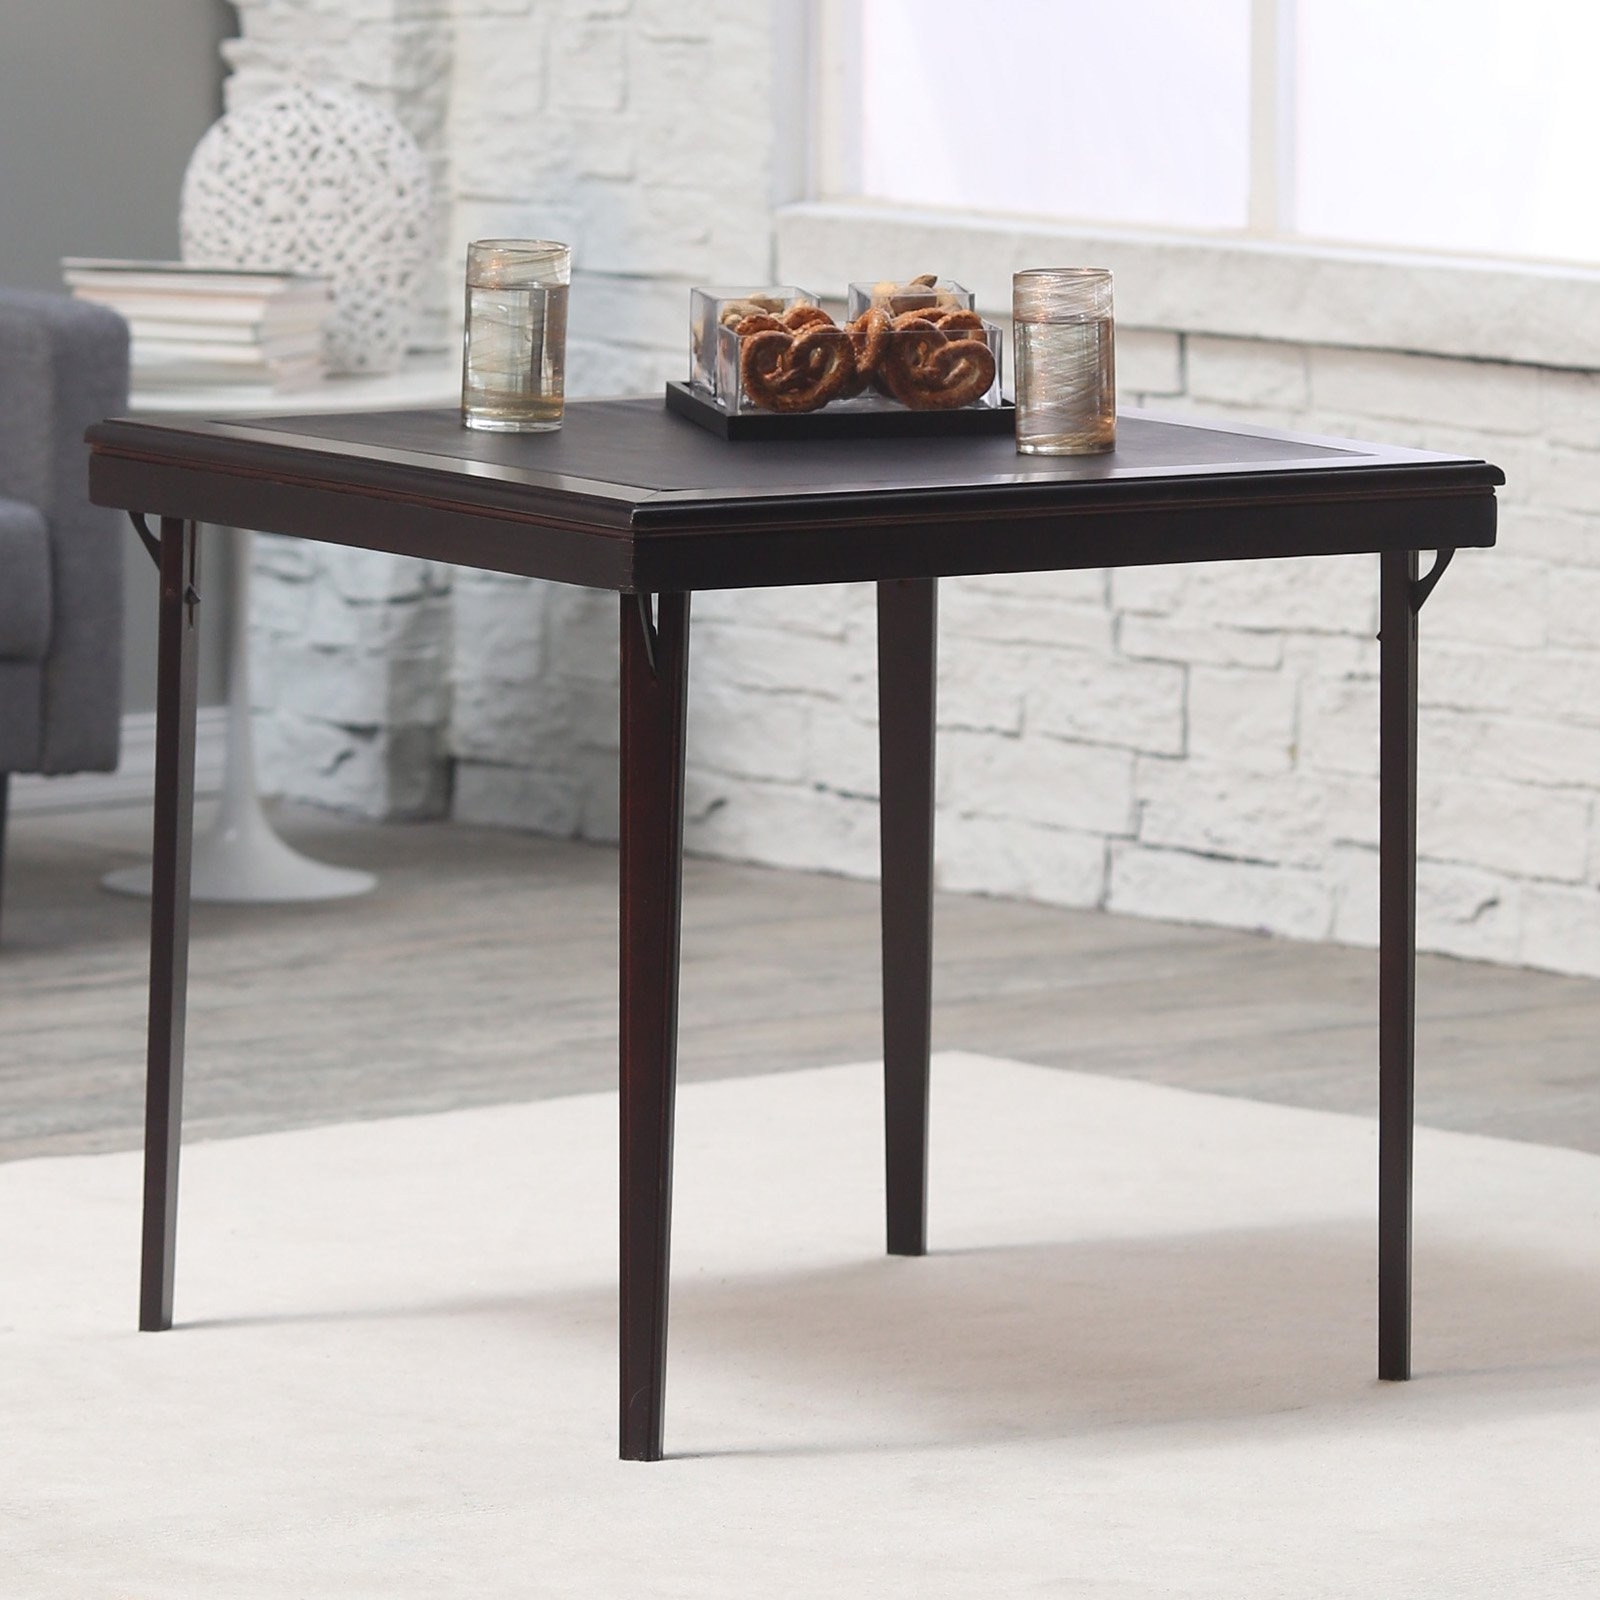 Wood Folding Dining Tables With 2018 The Affordable Wood Folding Dining Table Trend (View 20 of 25)